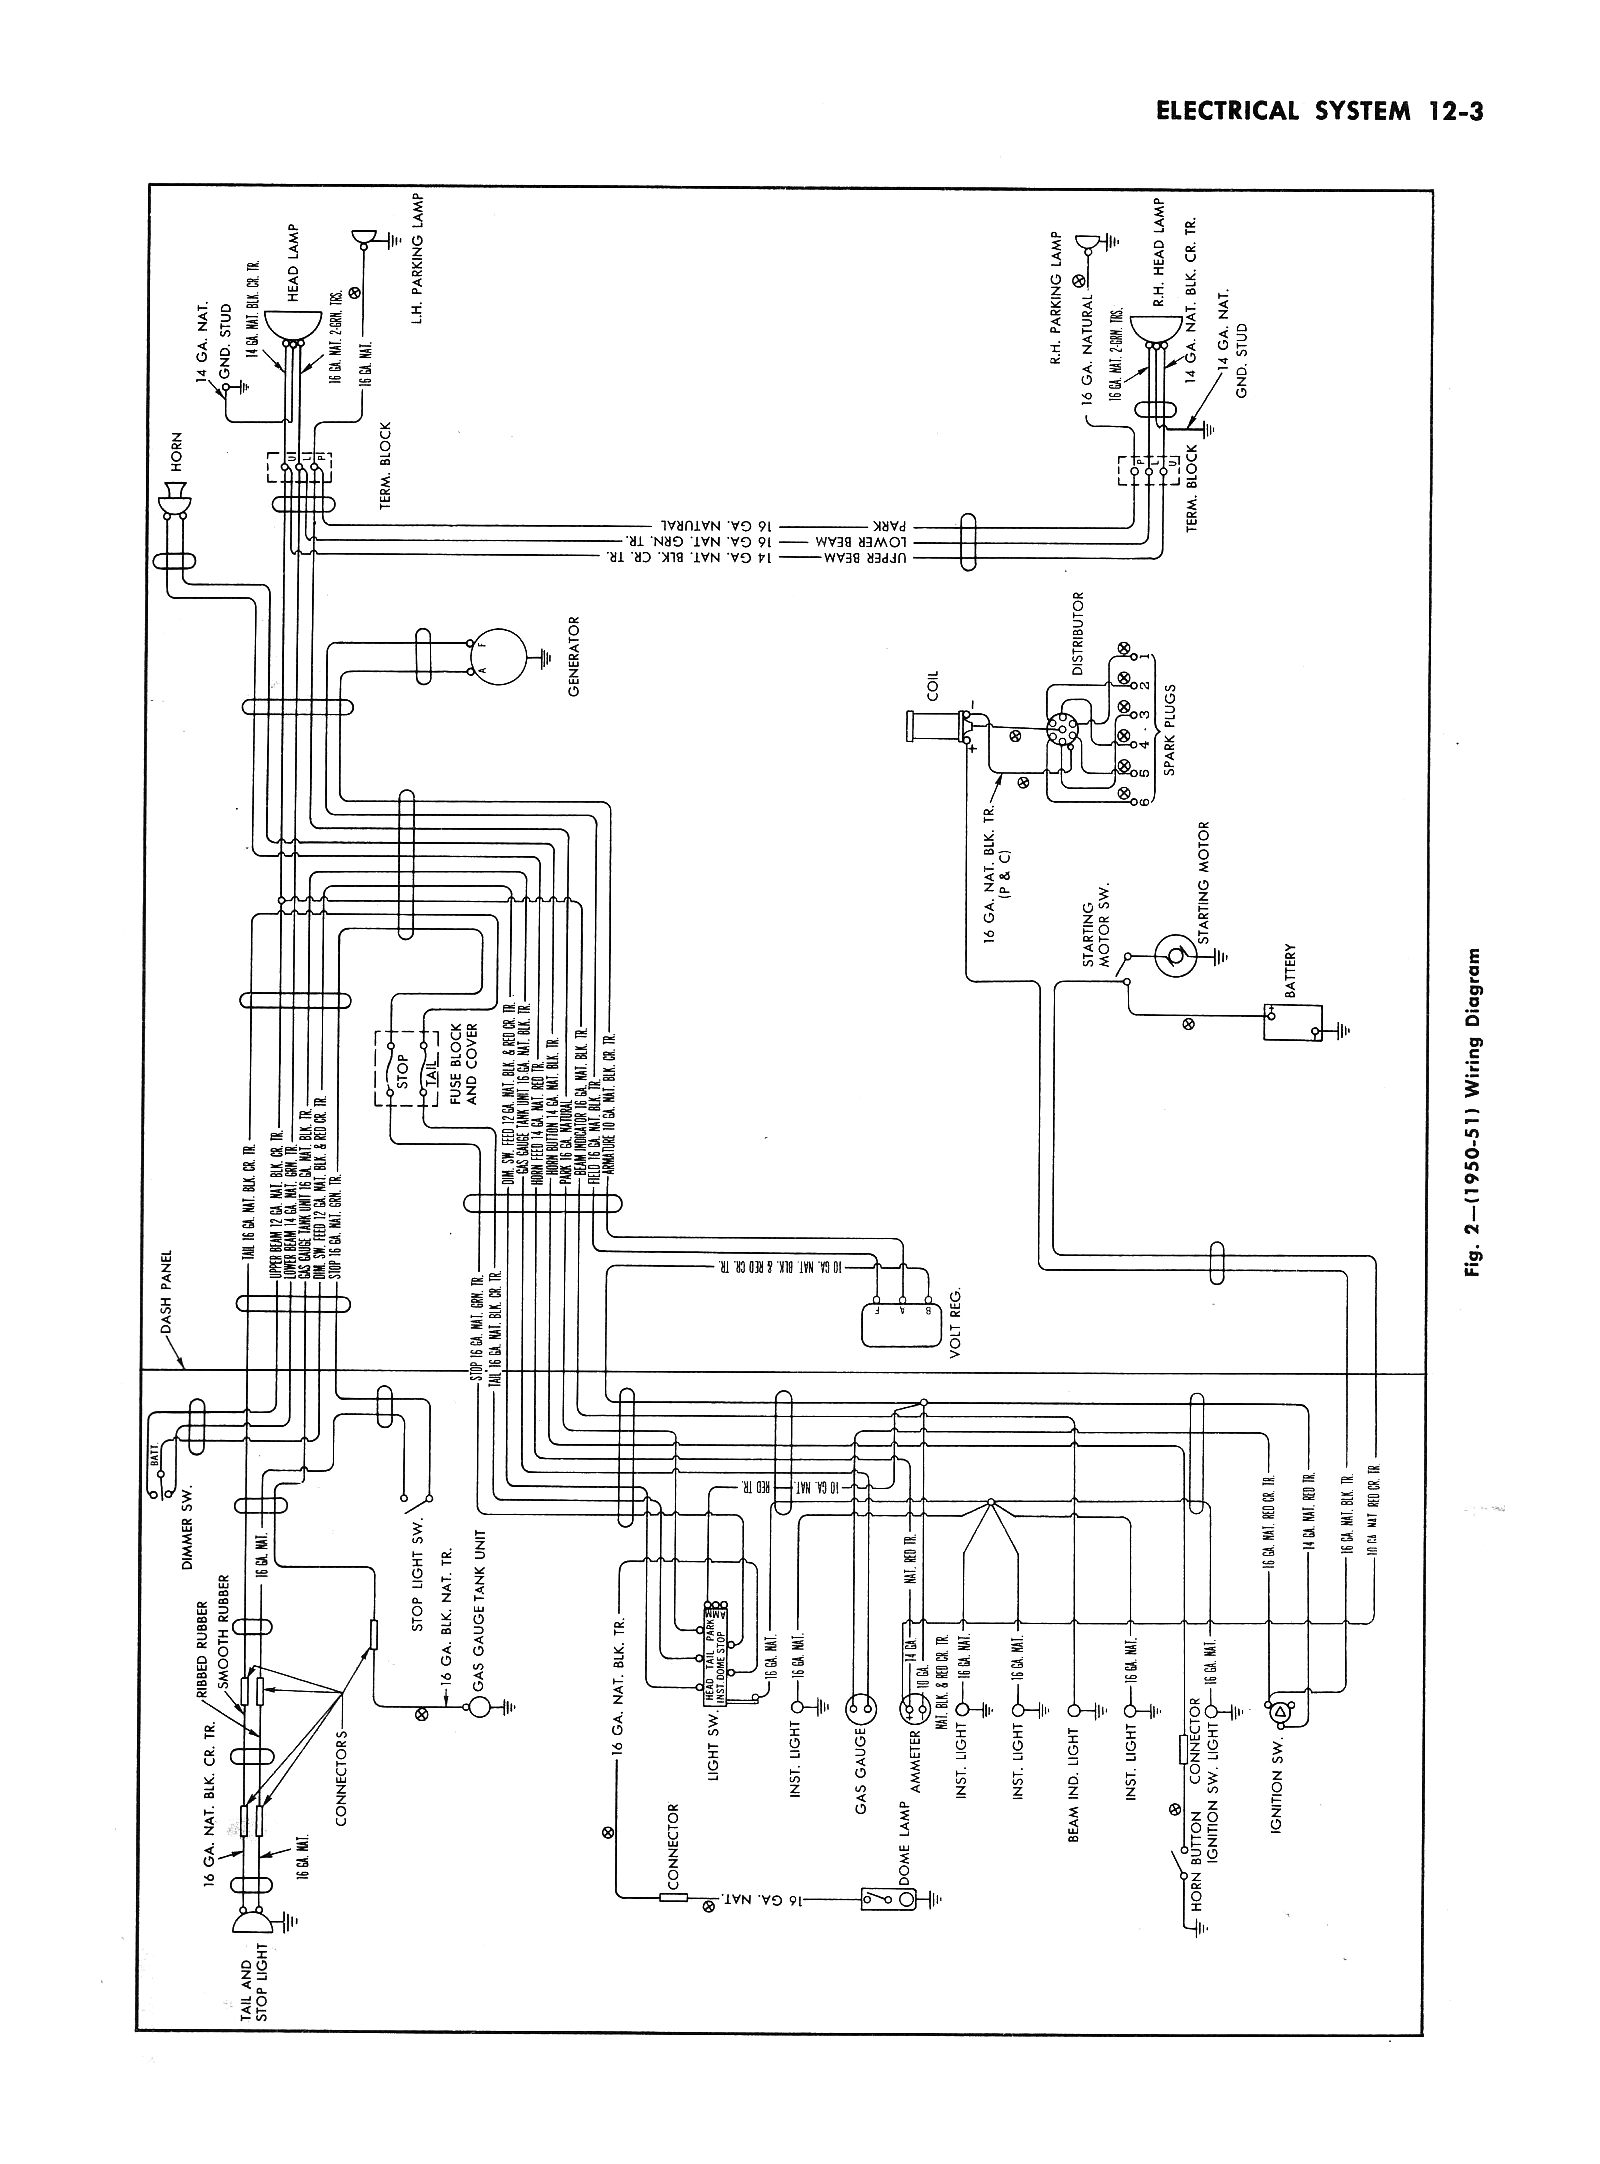 hight resolution of 1959 chevy pickup wiring diagram data wiring schema 1991 chevy 1500 wiring diagram 1996 chevy 1500